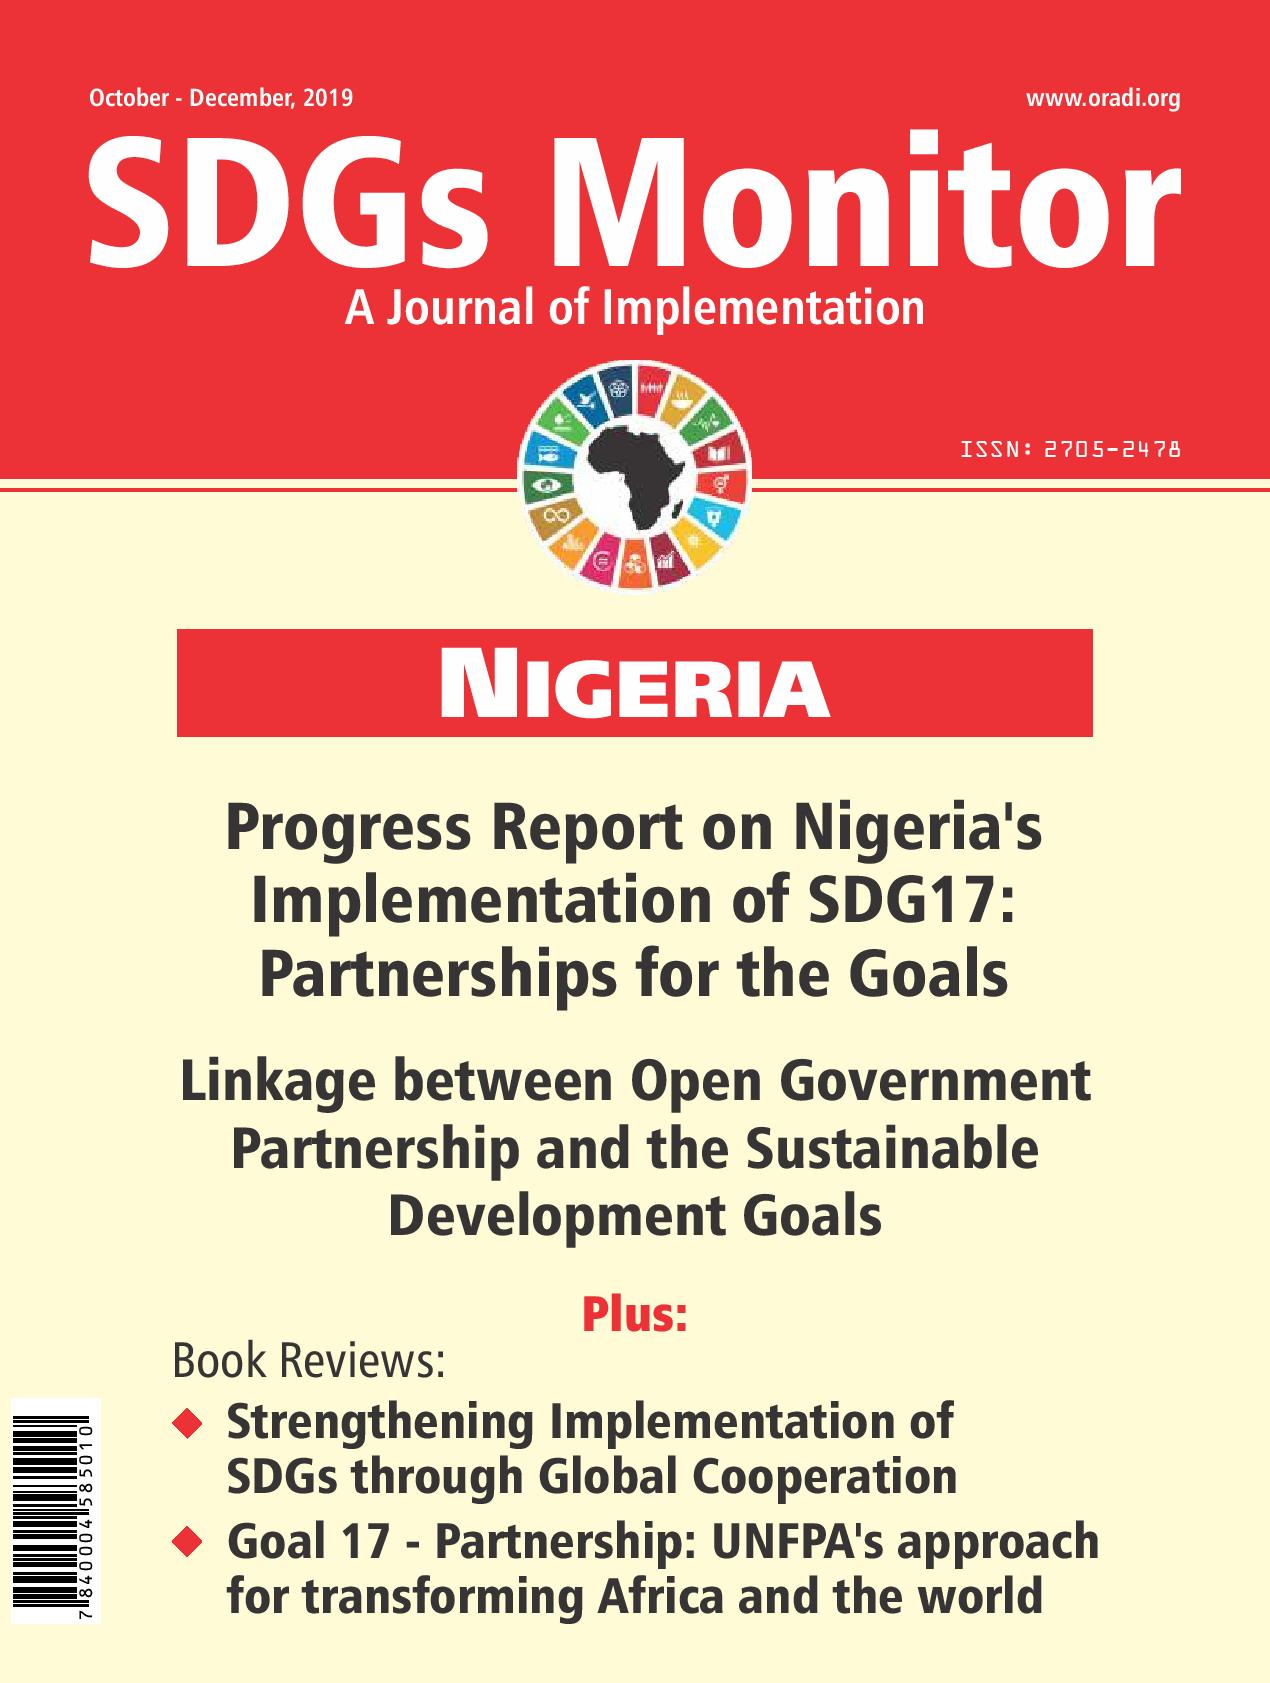 SDGs Monitor Journal (Oct - Dec, 2019)